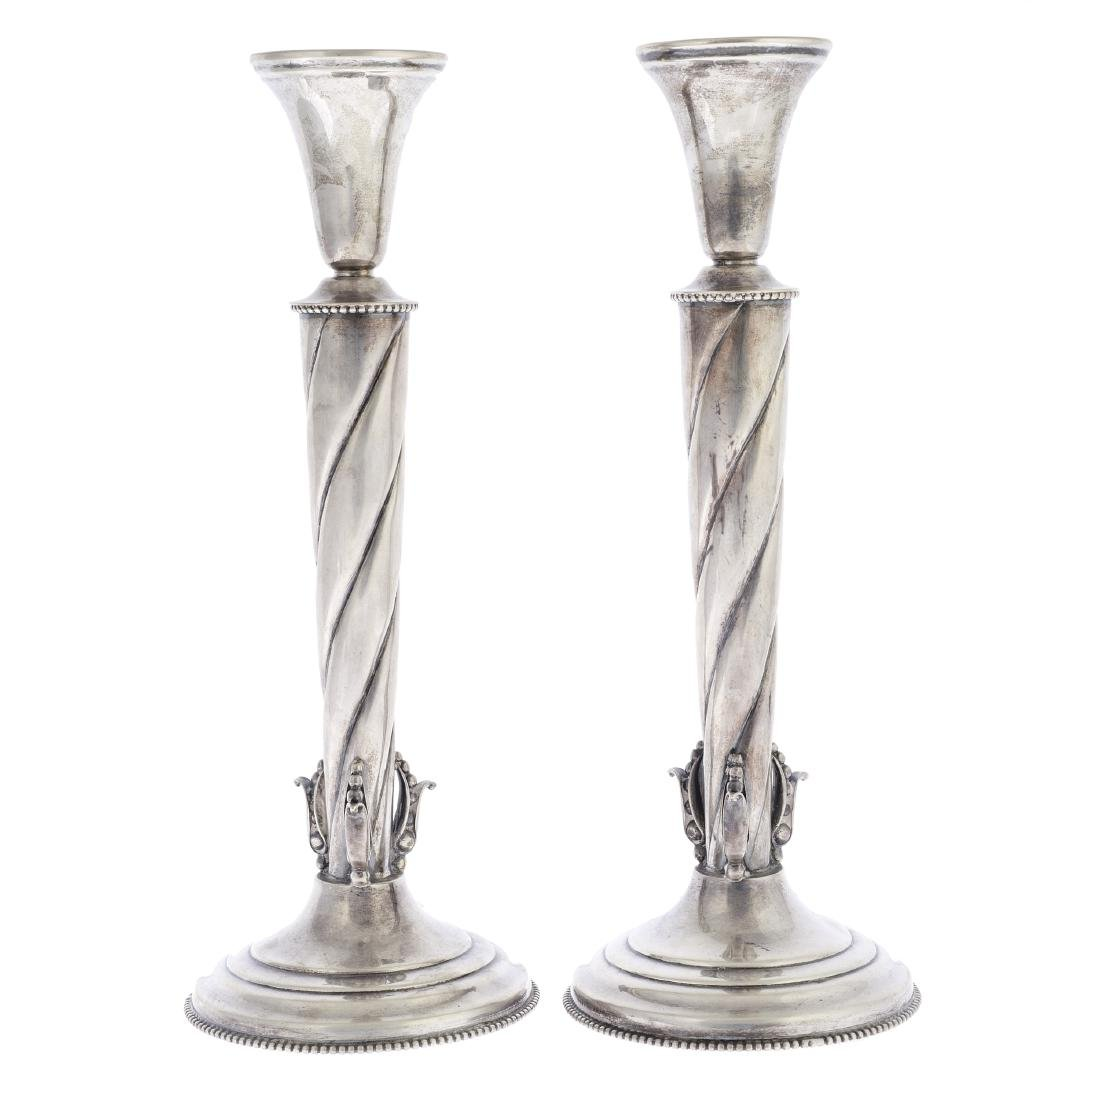 A pair of American Jensen style sterling silver candle